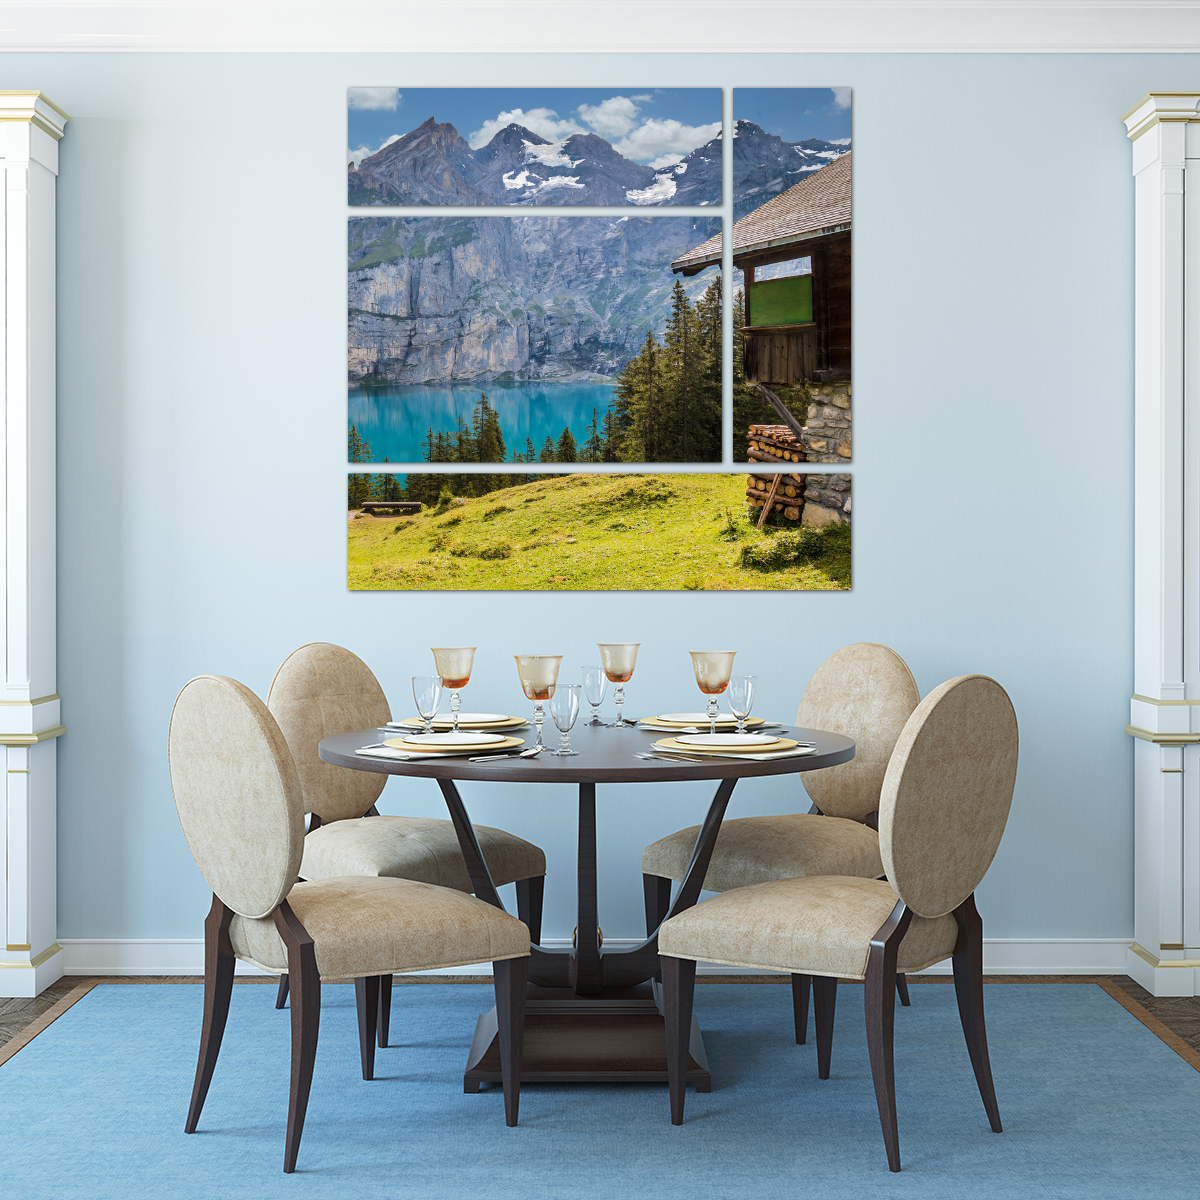 landscape split in dining room